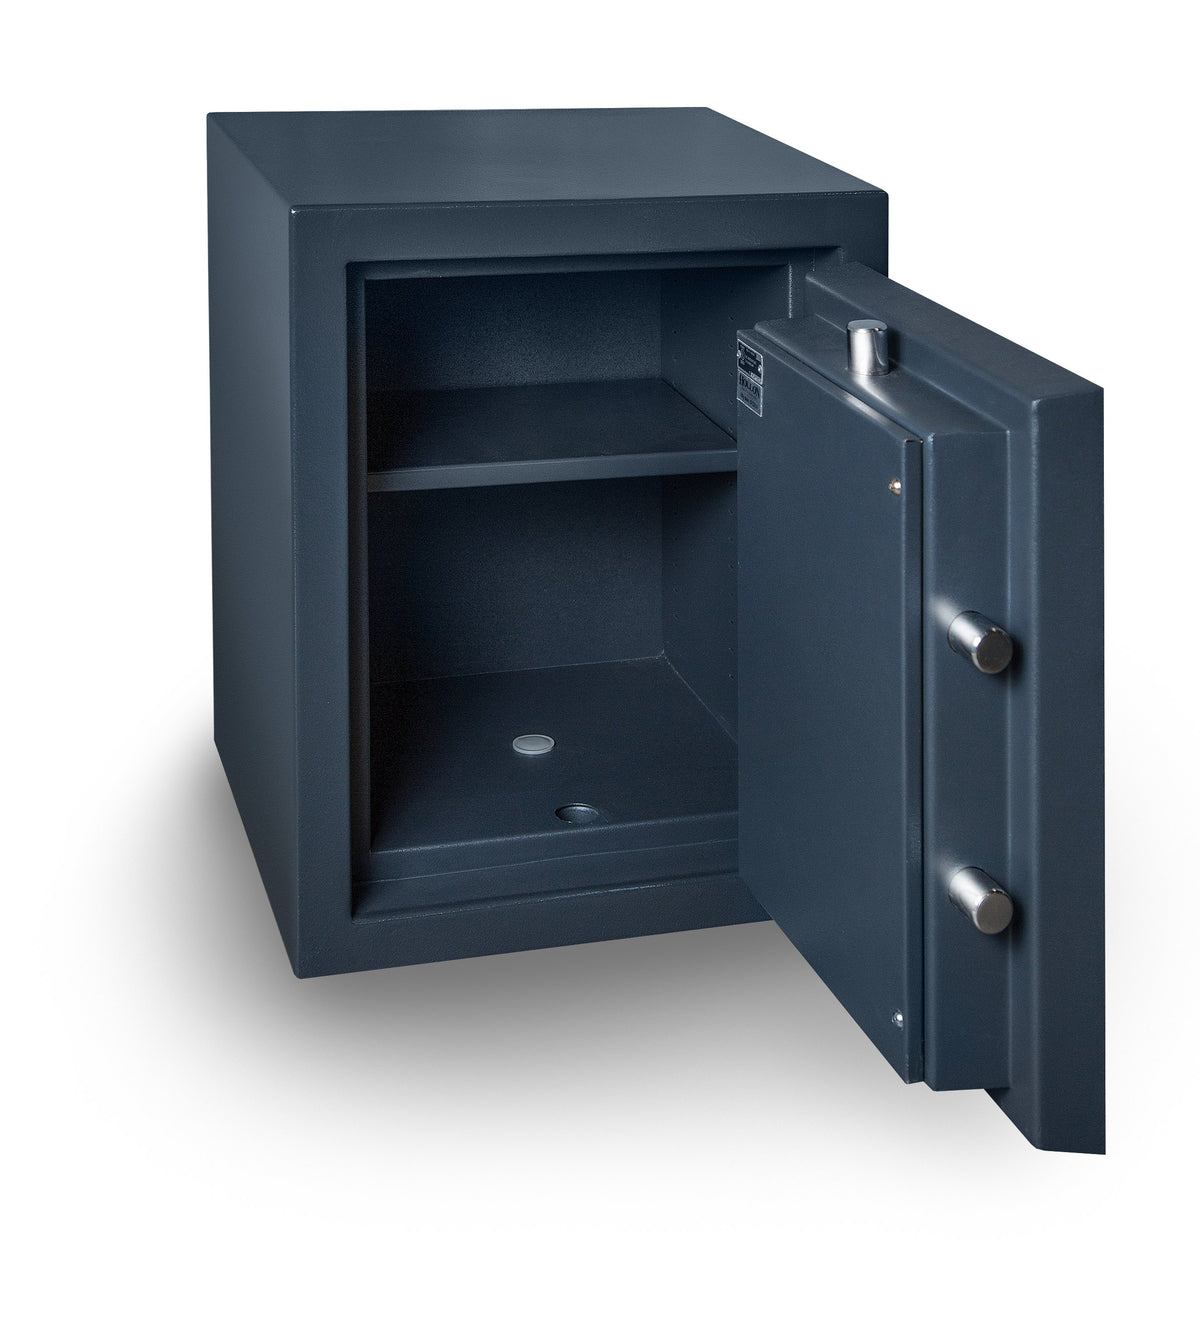 High Security Burglar Fire Safes - Hollon MJ-1814E TL-30 Burglary 2 Hour Fire Safe With Electronic Lock